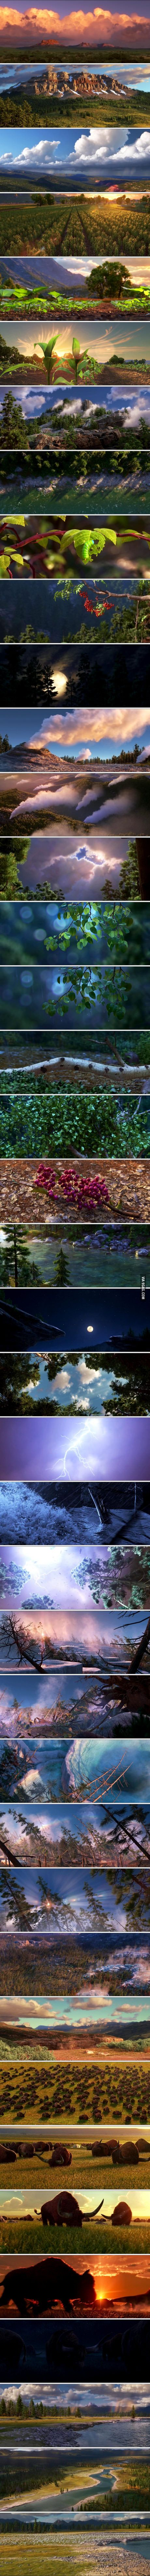 """Movie """"The Good Dinosaur"""" landscapes are amazing"""